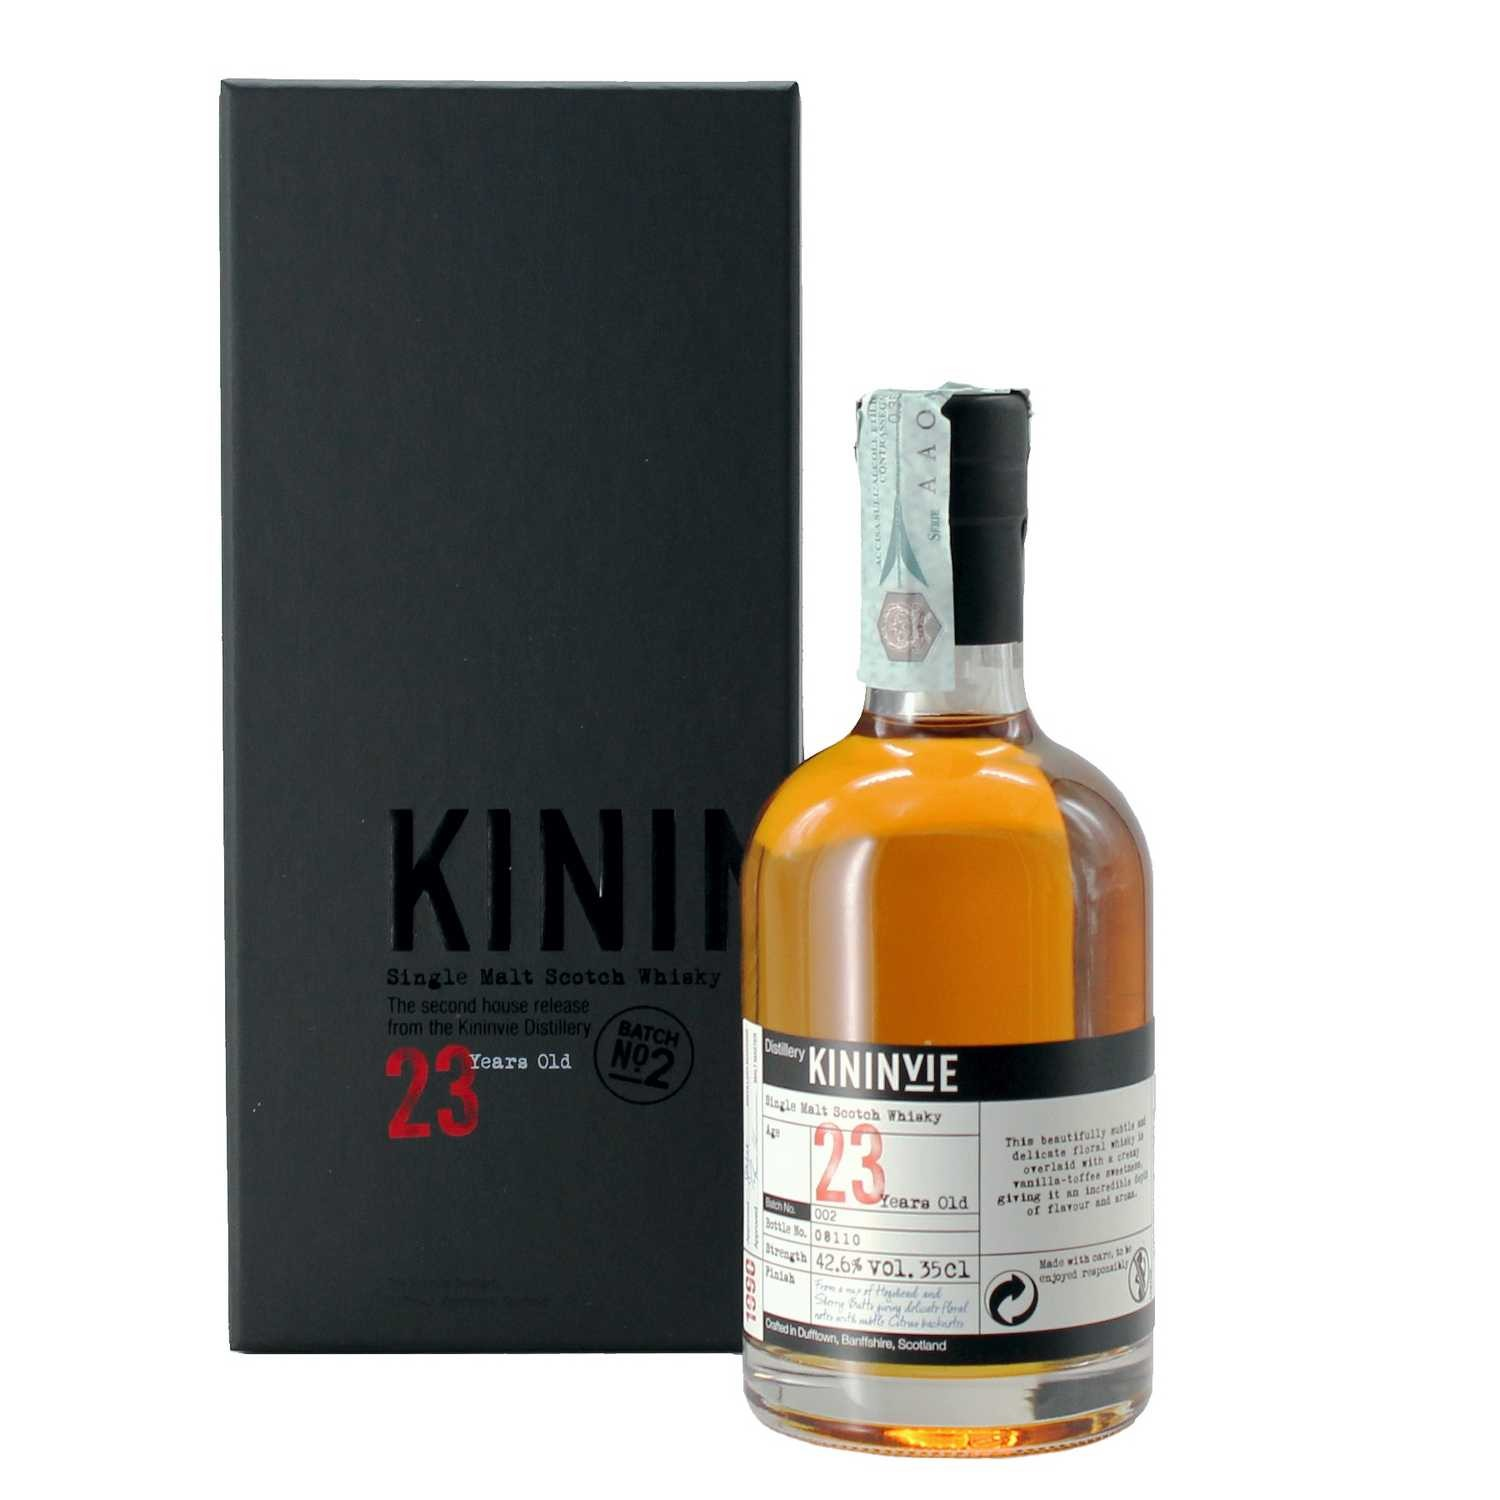 whisky single malt 1990 23 years old 35 cl kininvie - enoteca pirovano